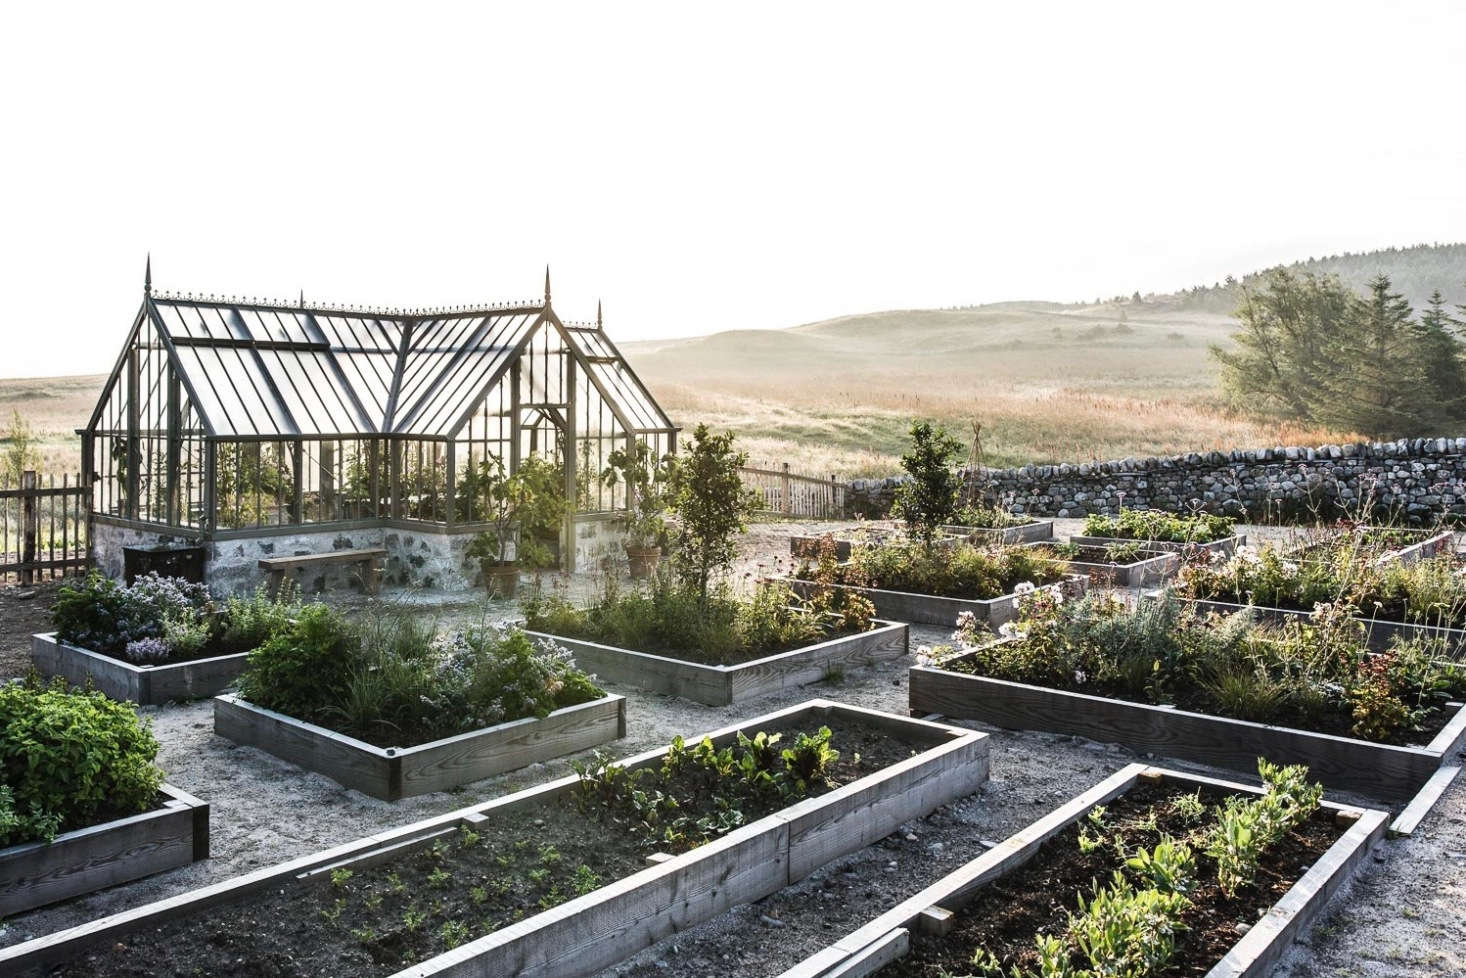 See more of this garden at Killiehuntly Farmhouse: An Organic Garden in the Scottish Highlands. Photograph by Martin Kaufmann, courtesy of Killiehuntly.